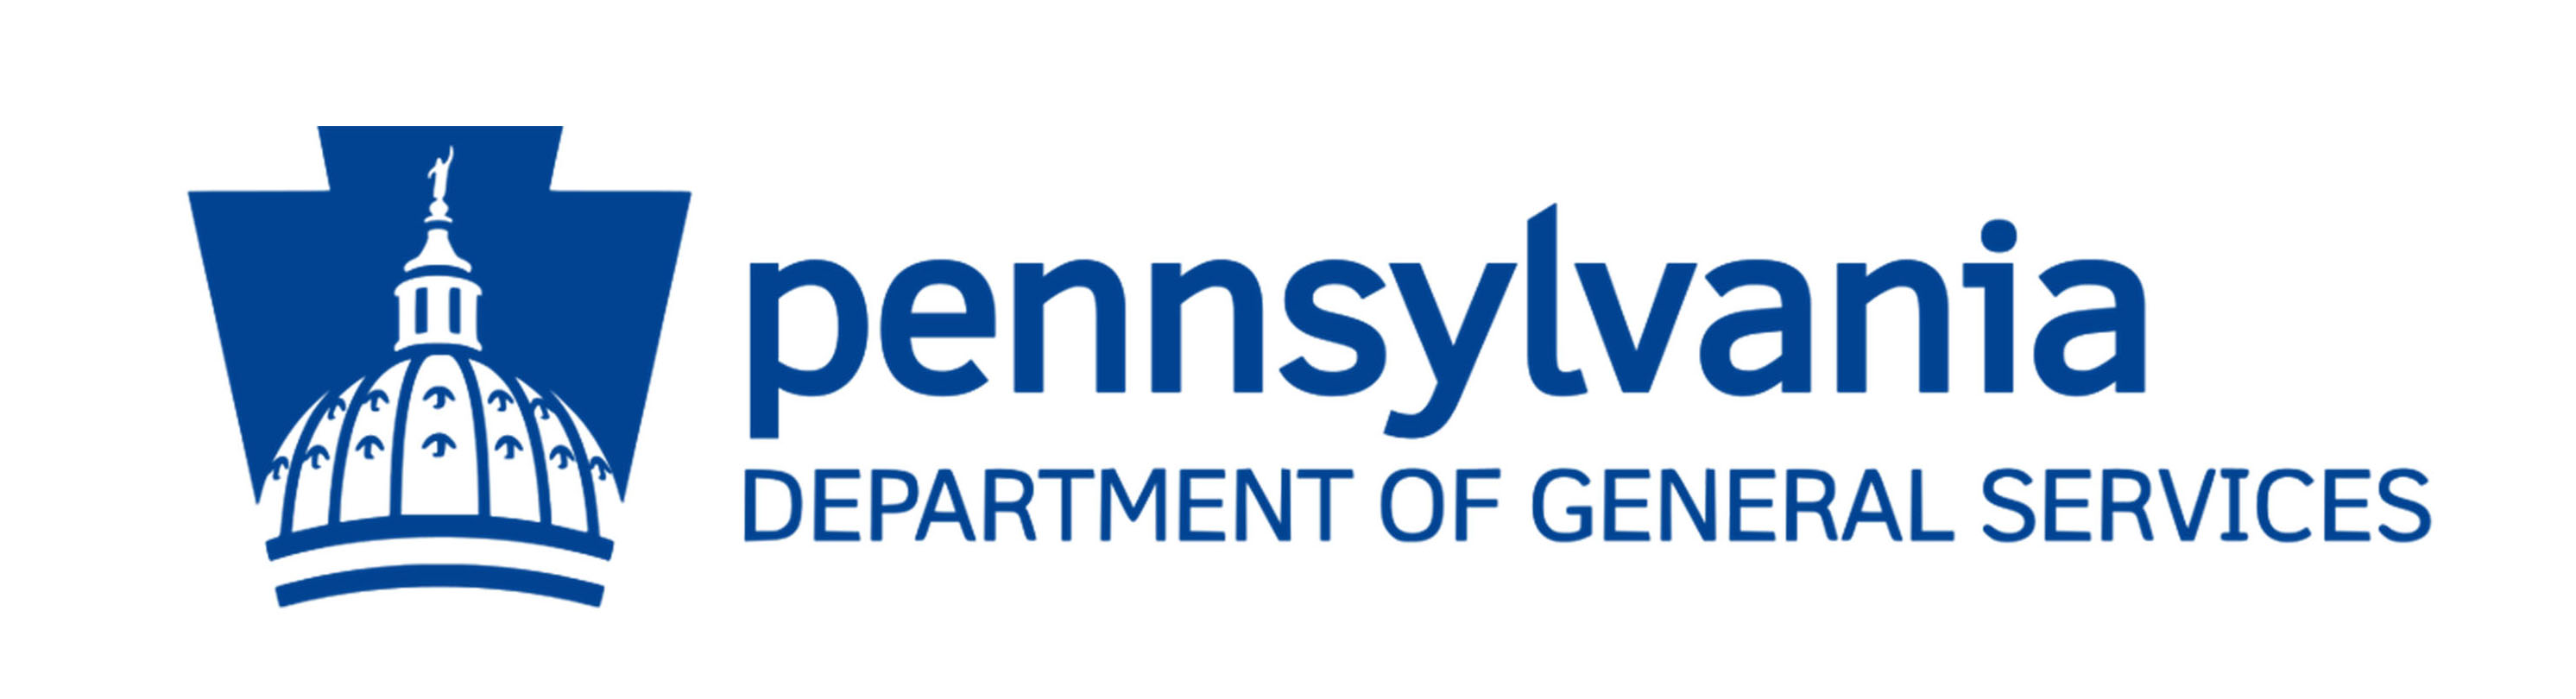 Pennsylvania Department of General Services Logo